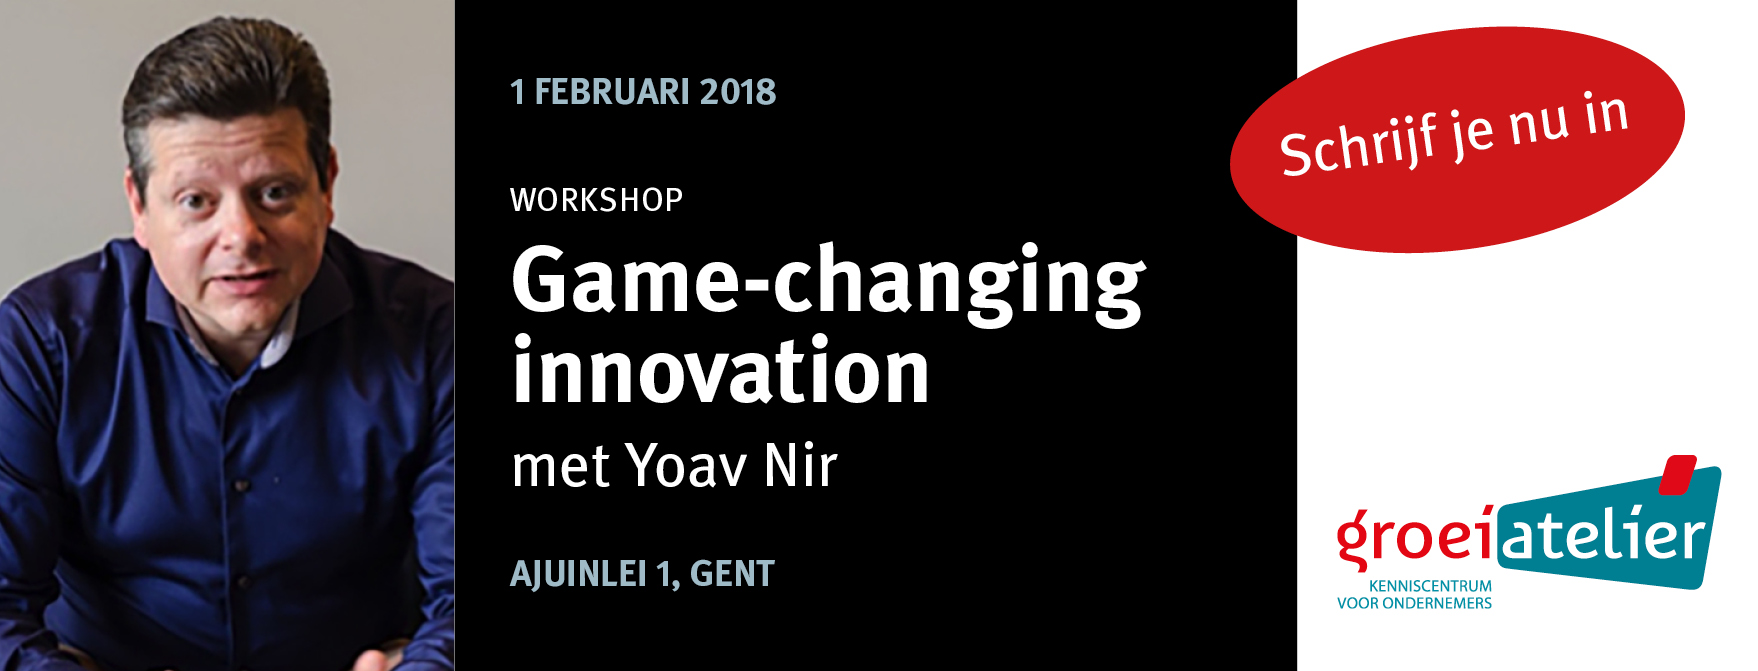 Game-changing innovation workshop